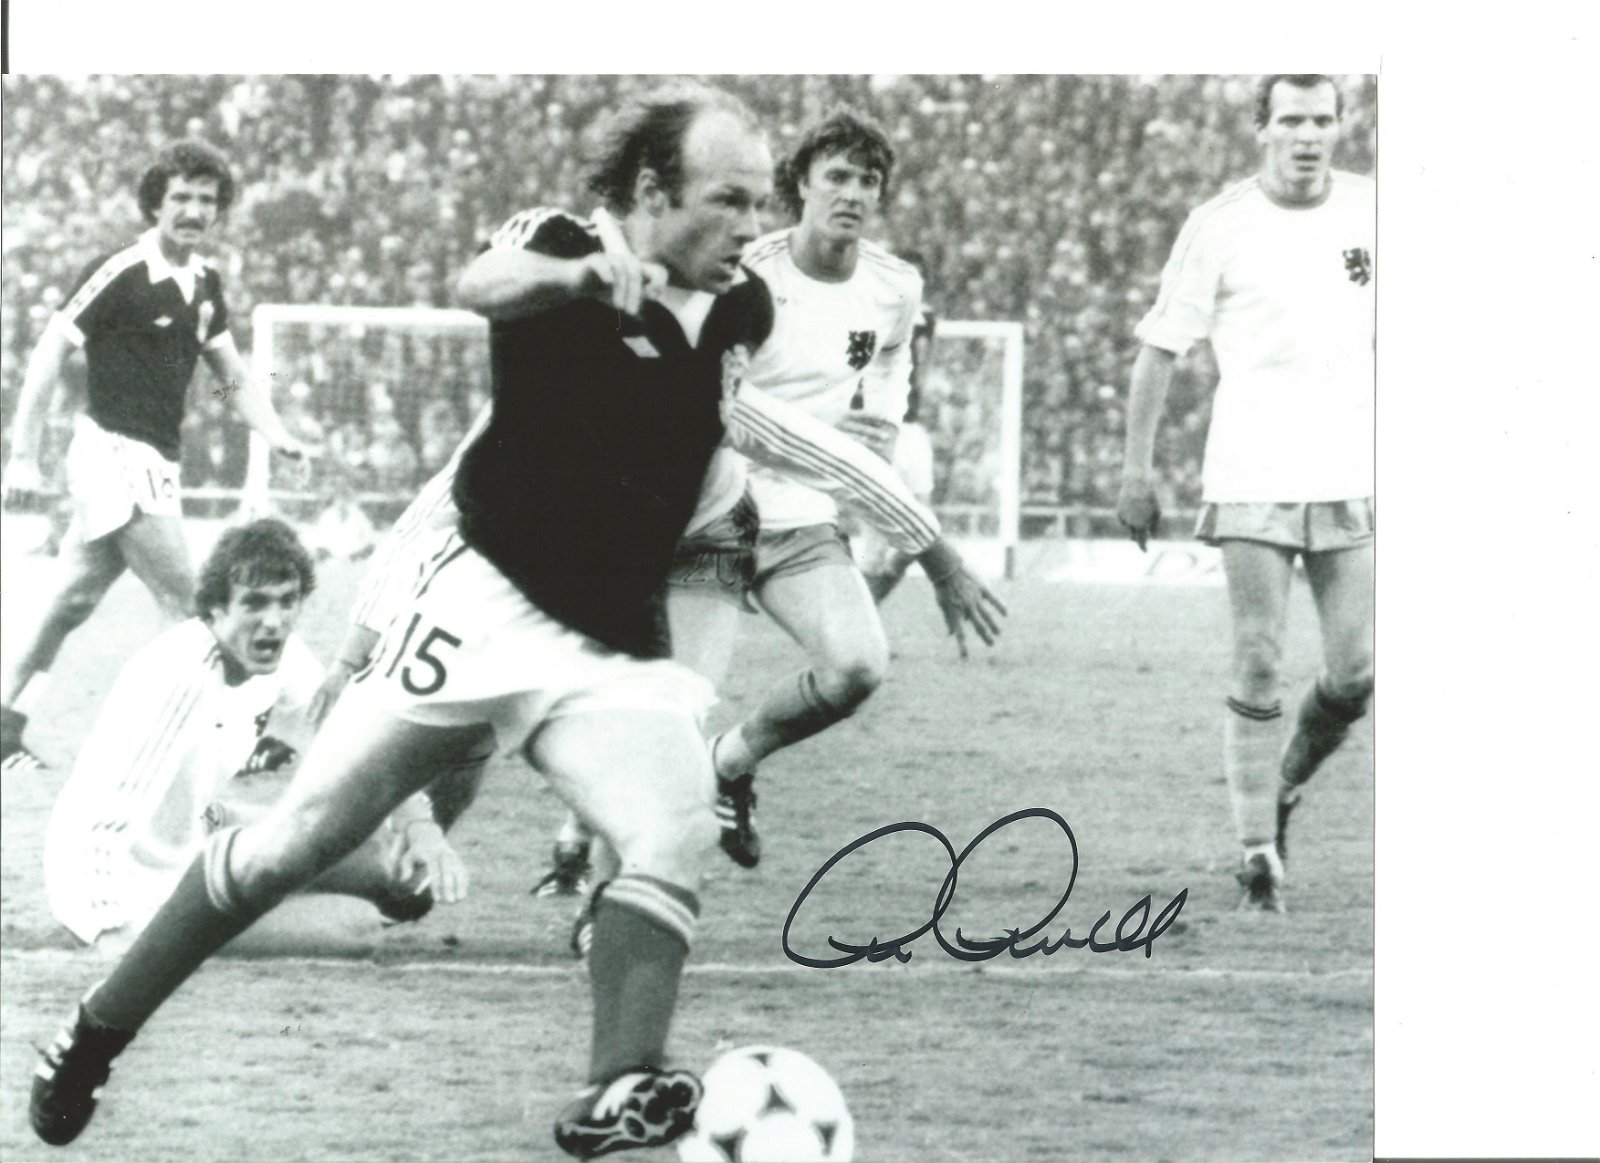 Archie Gemmill 10x8 Signed B/W Football Photo Pictured